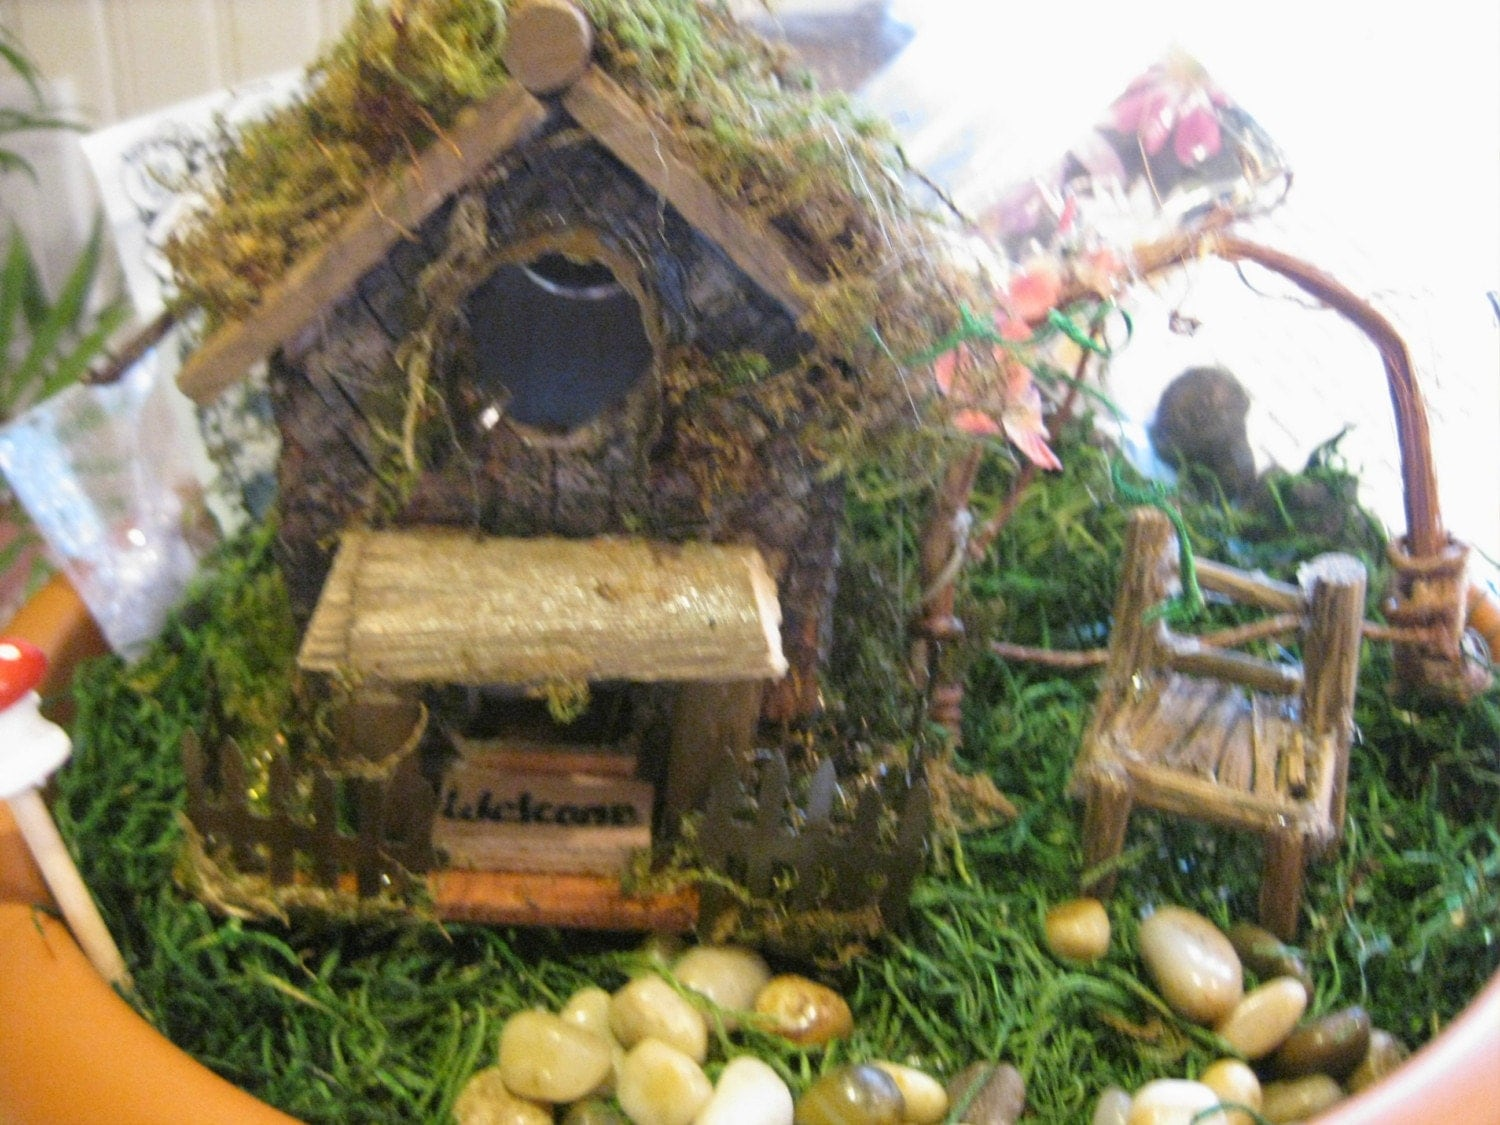 Complete Fairy Garden Starter Kit 2 by CLOUDFAIRY on Etsy